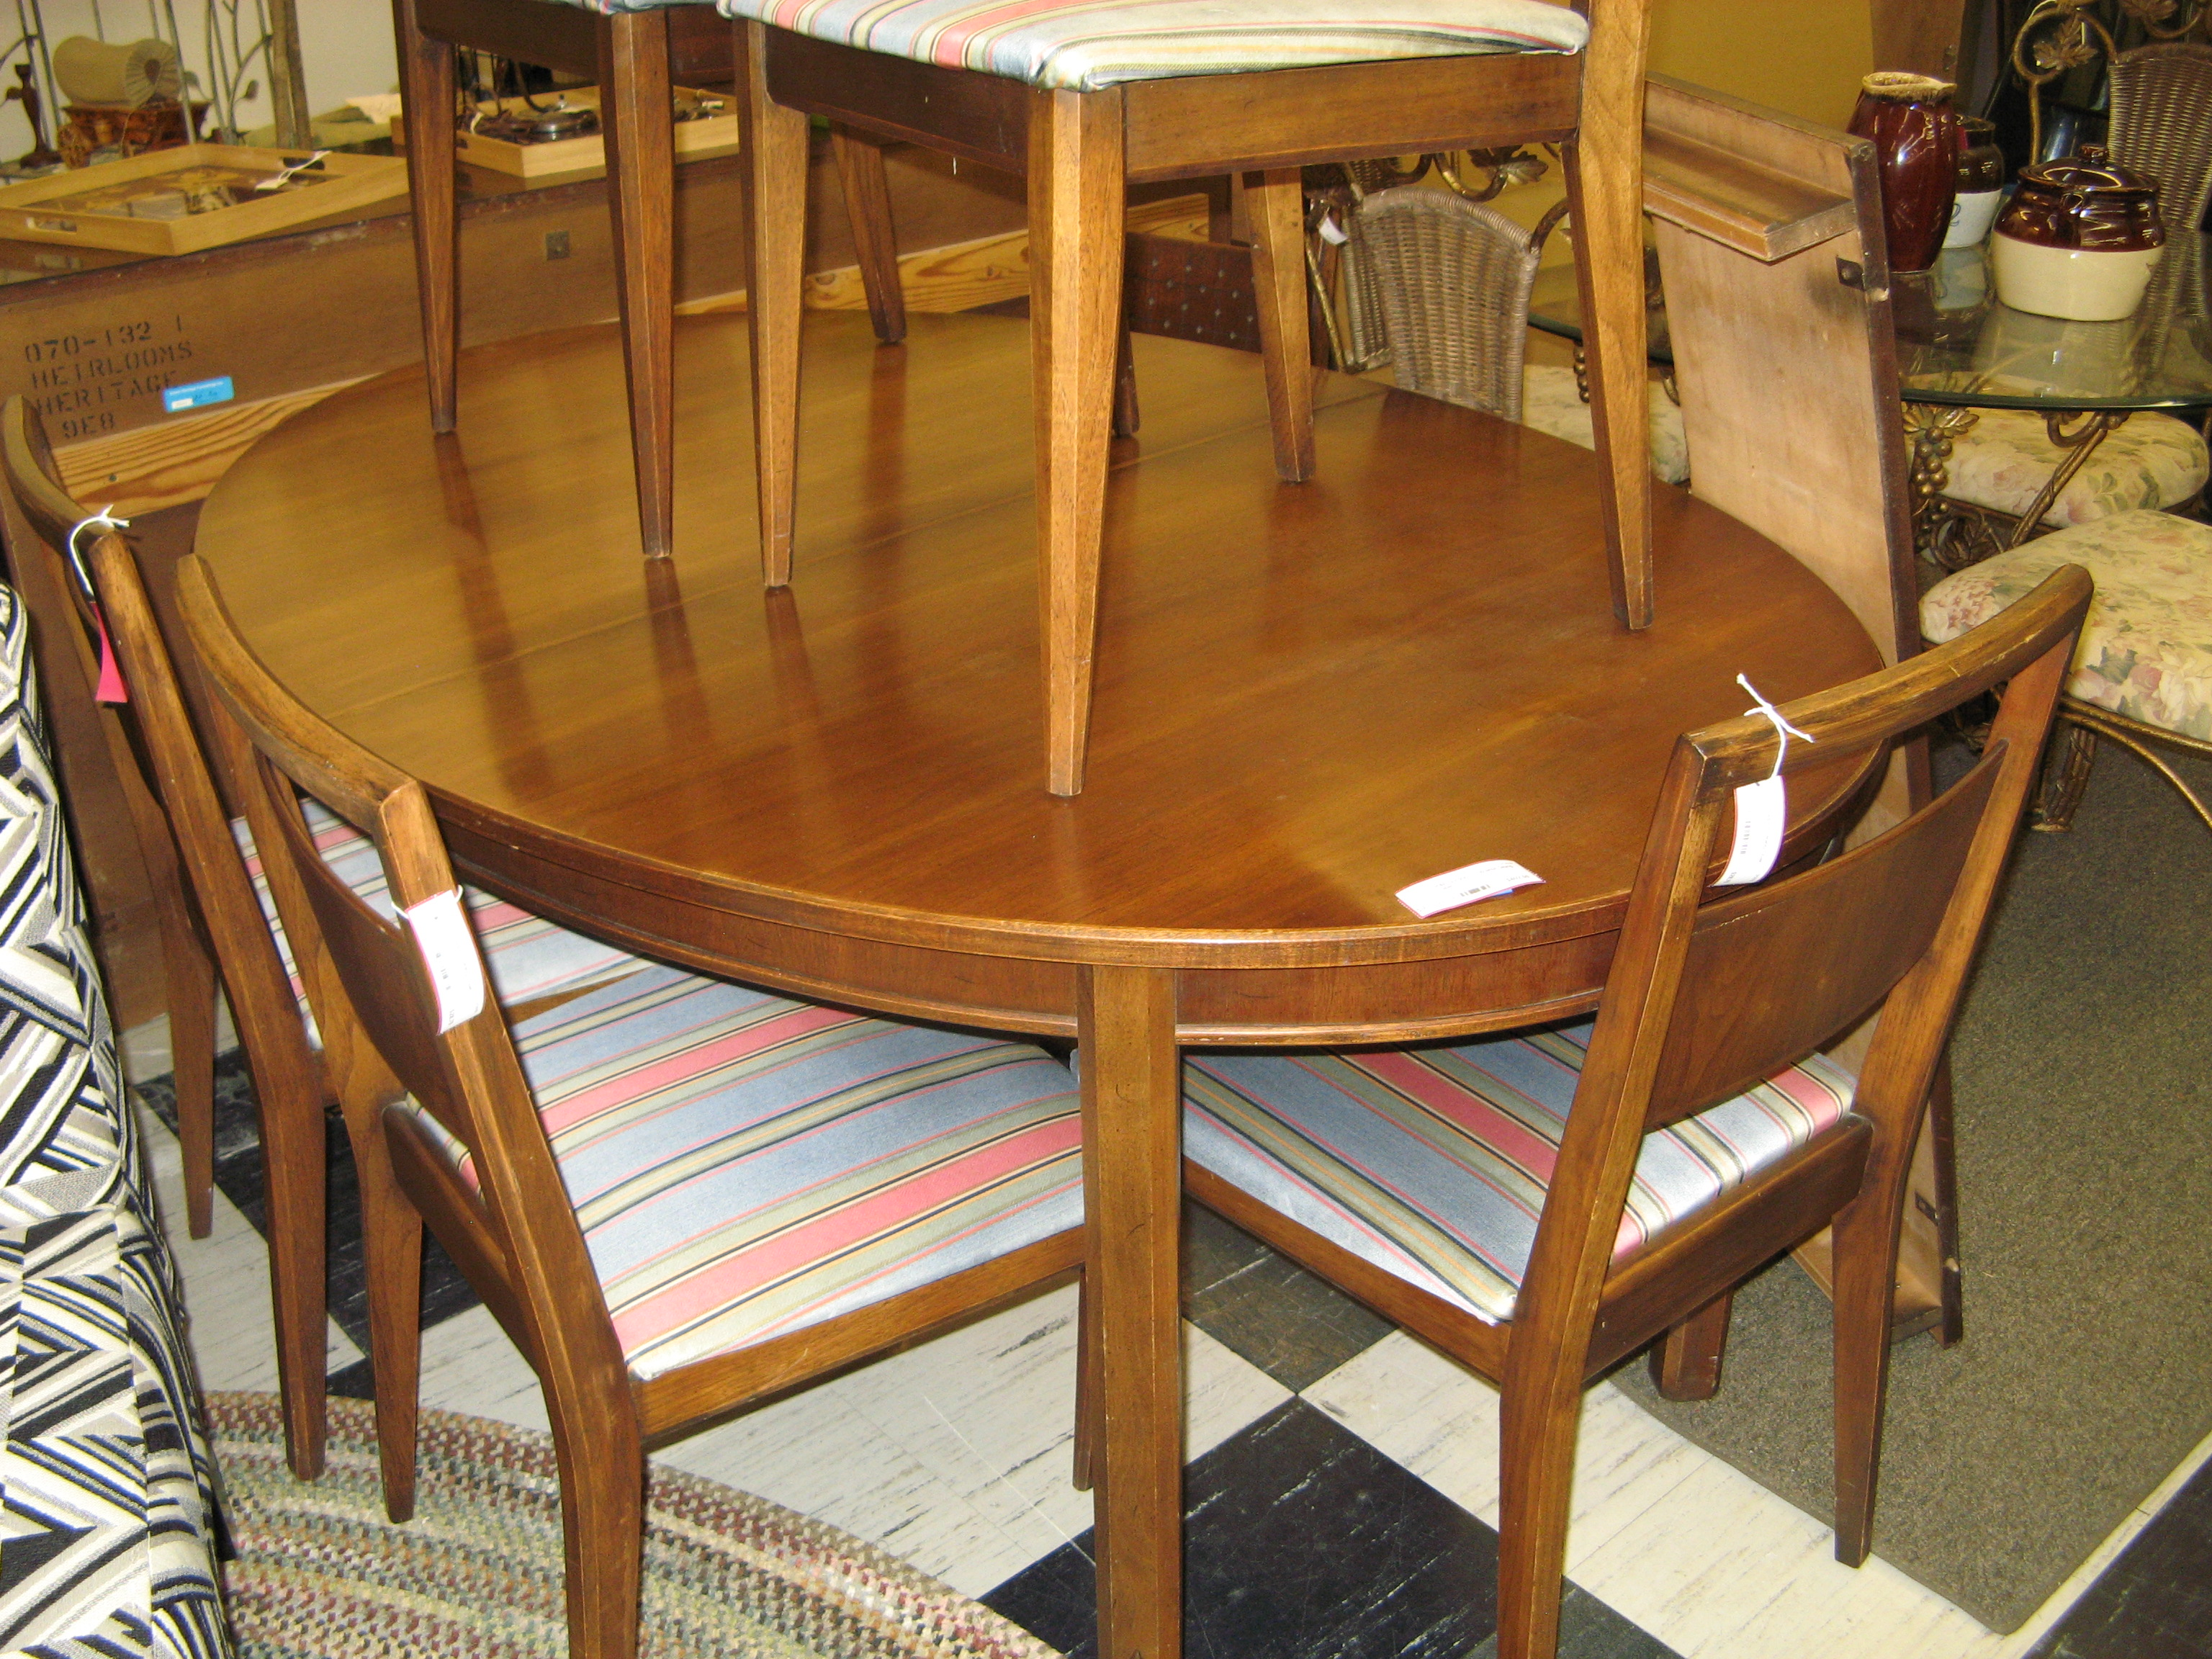 R&E Gordon Furn. Co. Walnut Oval Dining Table